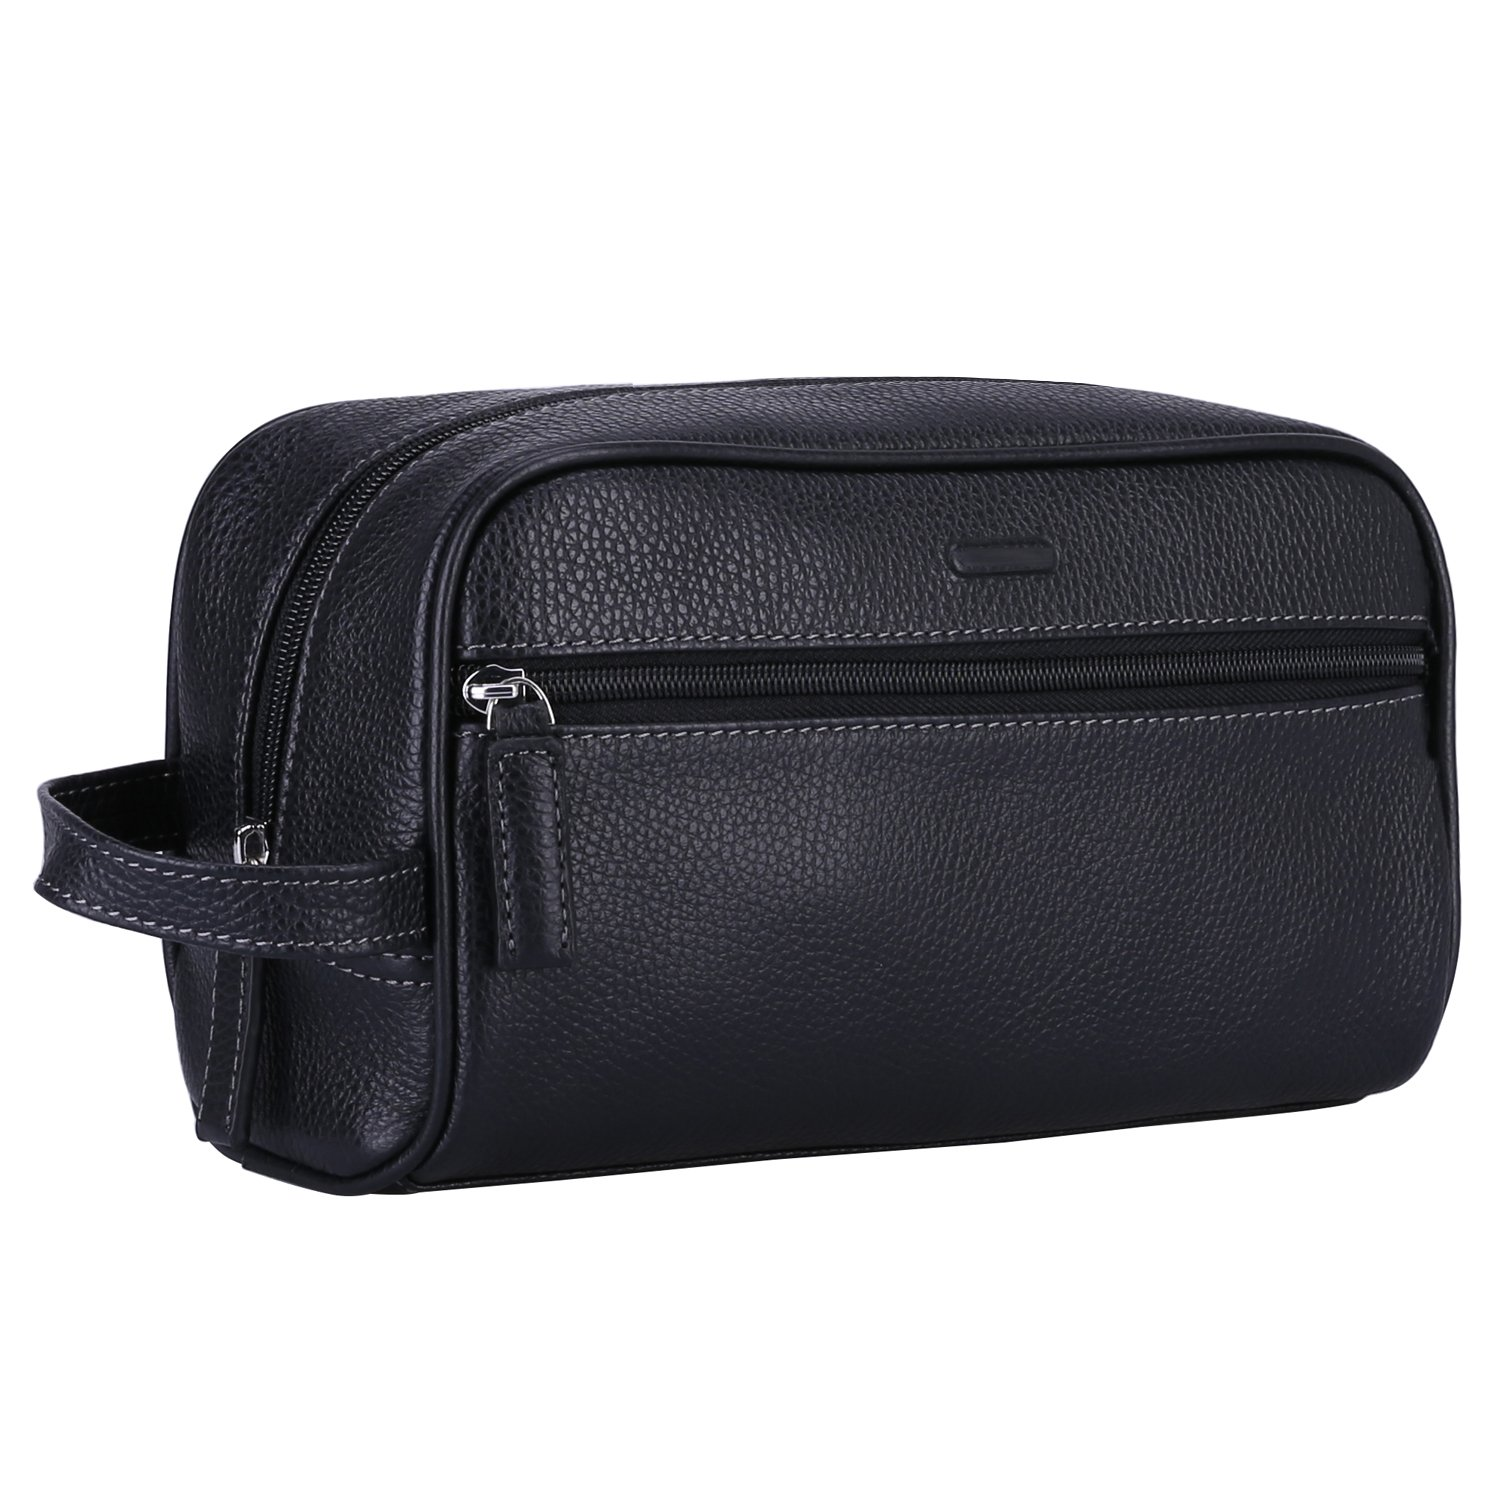 Banuce Vintage Leather Hanging Toiletry Bag for Men Travel Organizer Kit Black